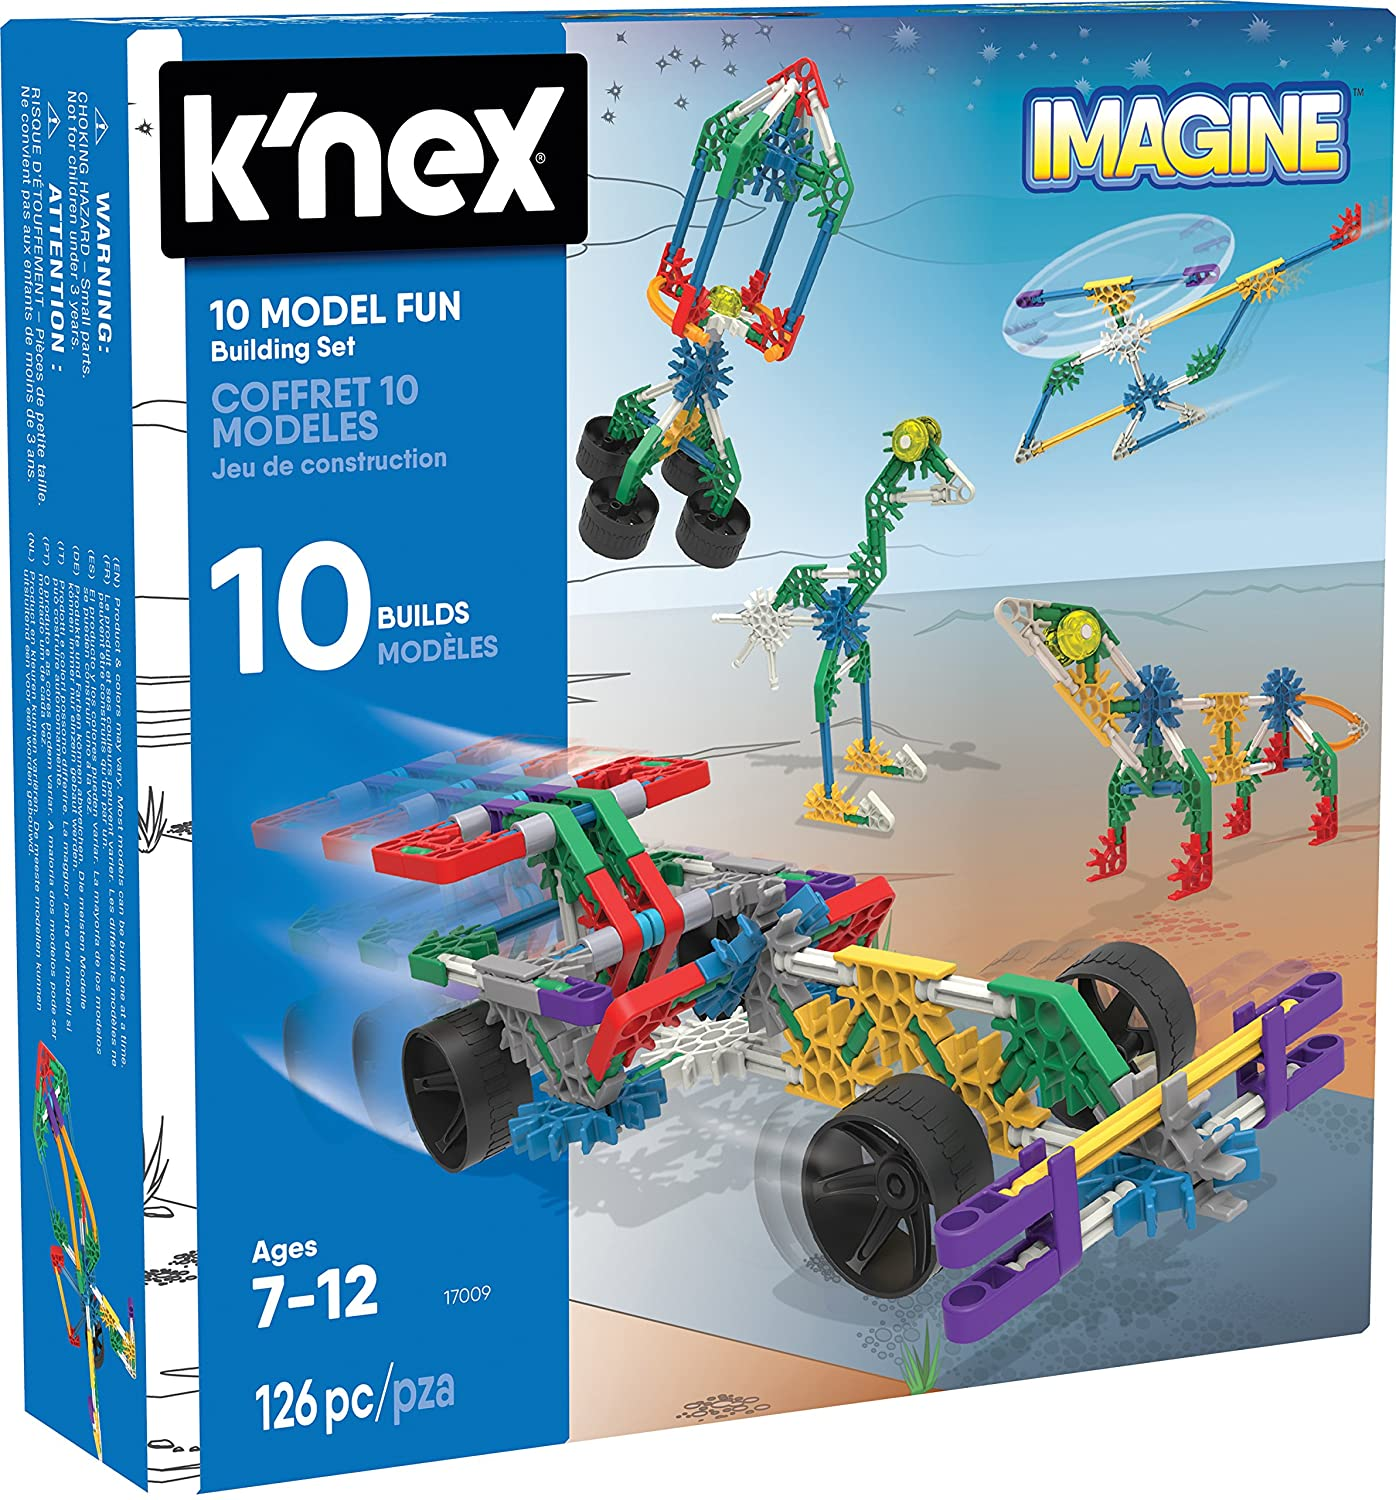 K'Nex KNEX Imagine 10 Model Building Fun Set for Ages 7+, Engineering Education Toy, 126 Pieces K'Nex 17009